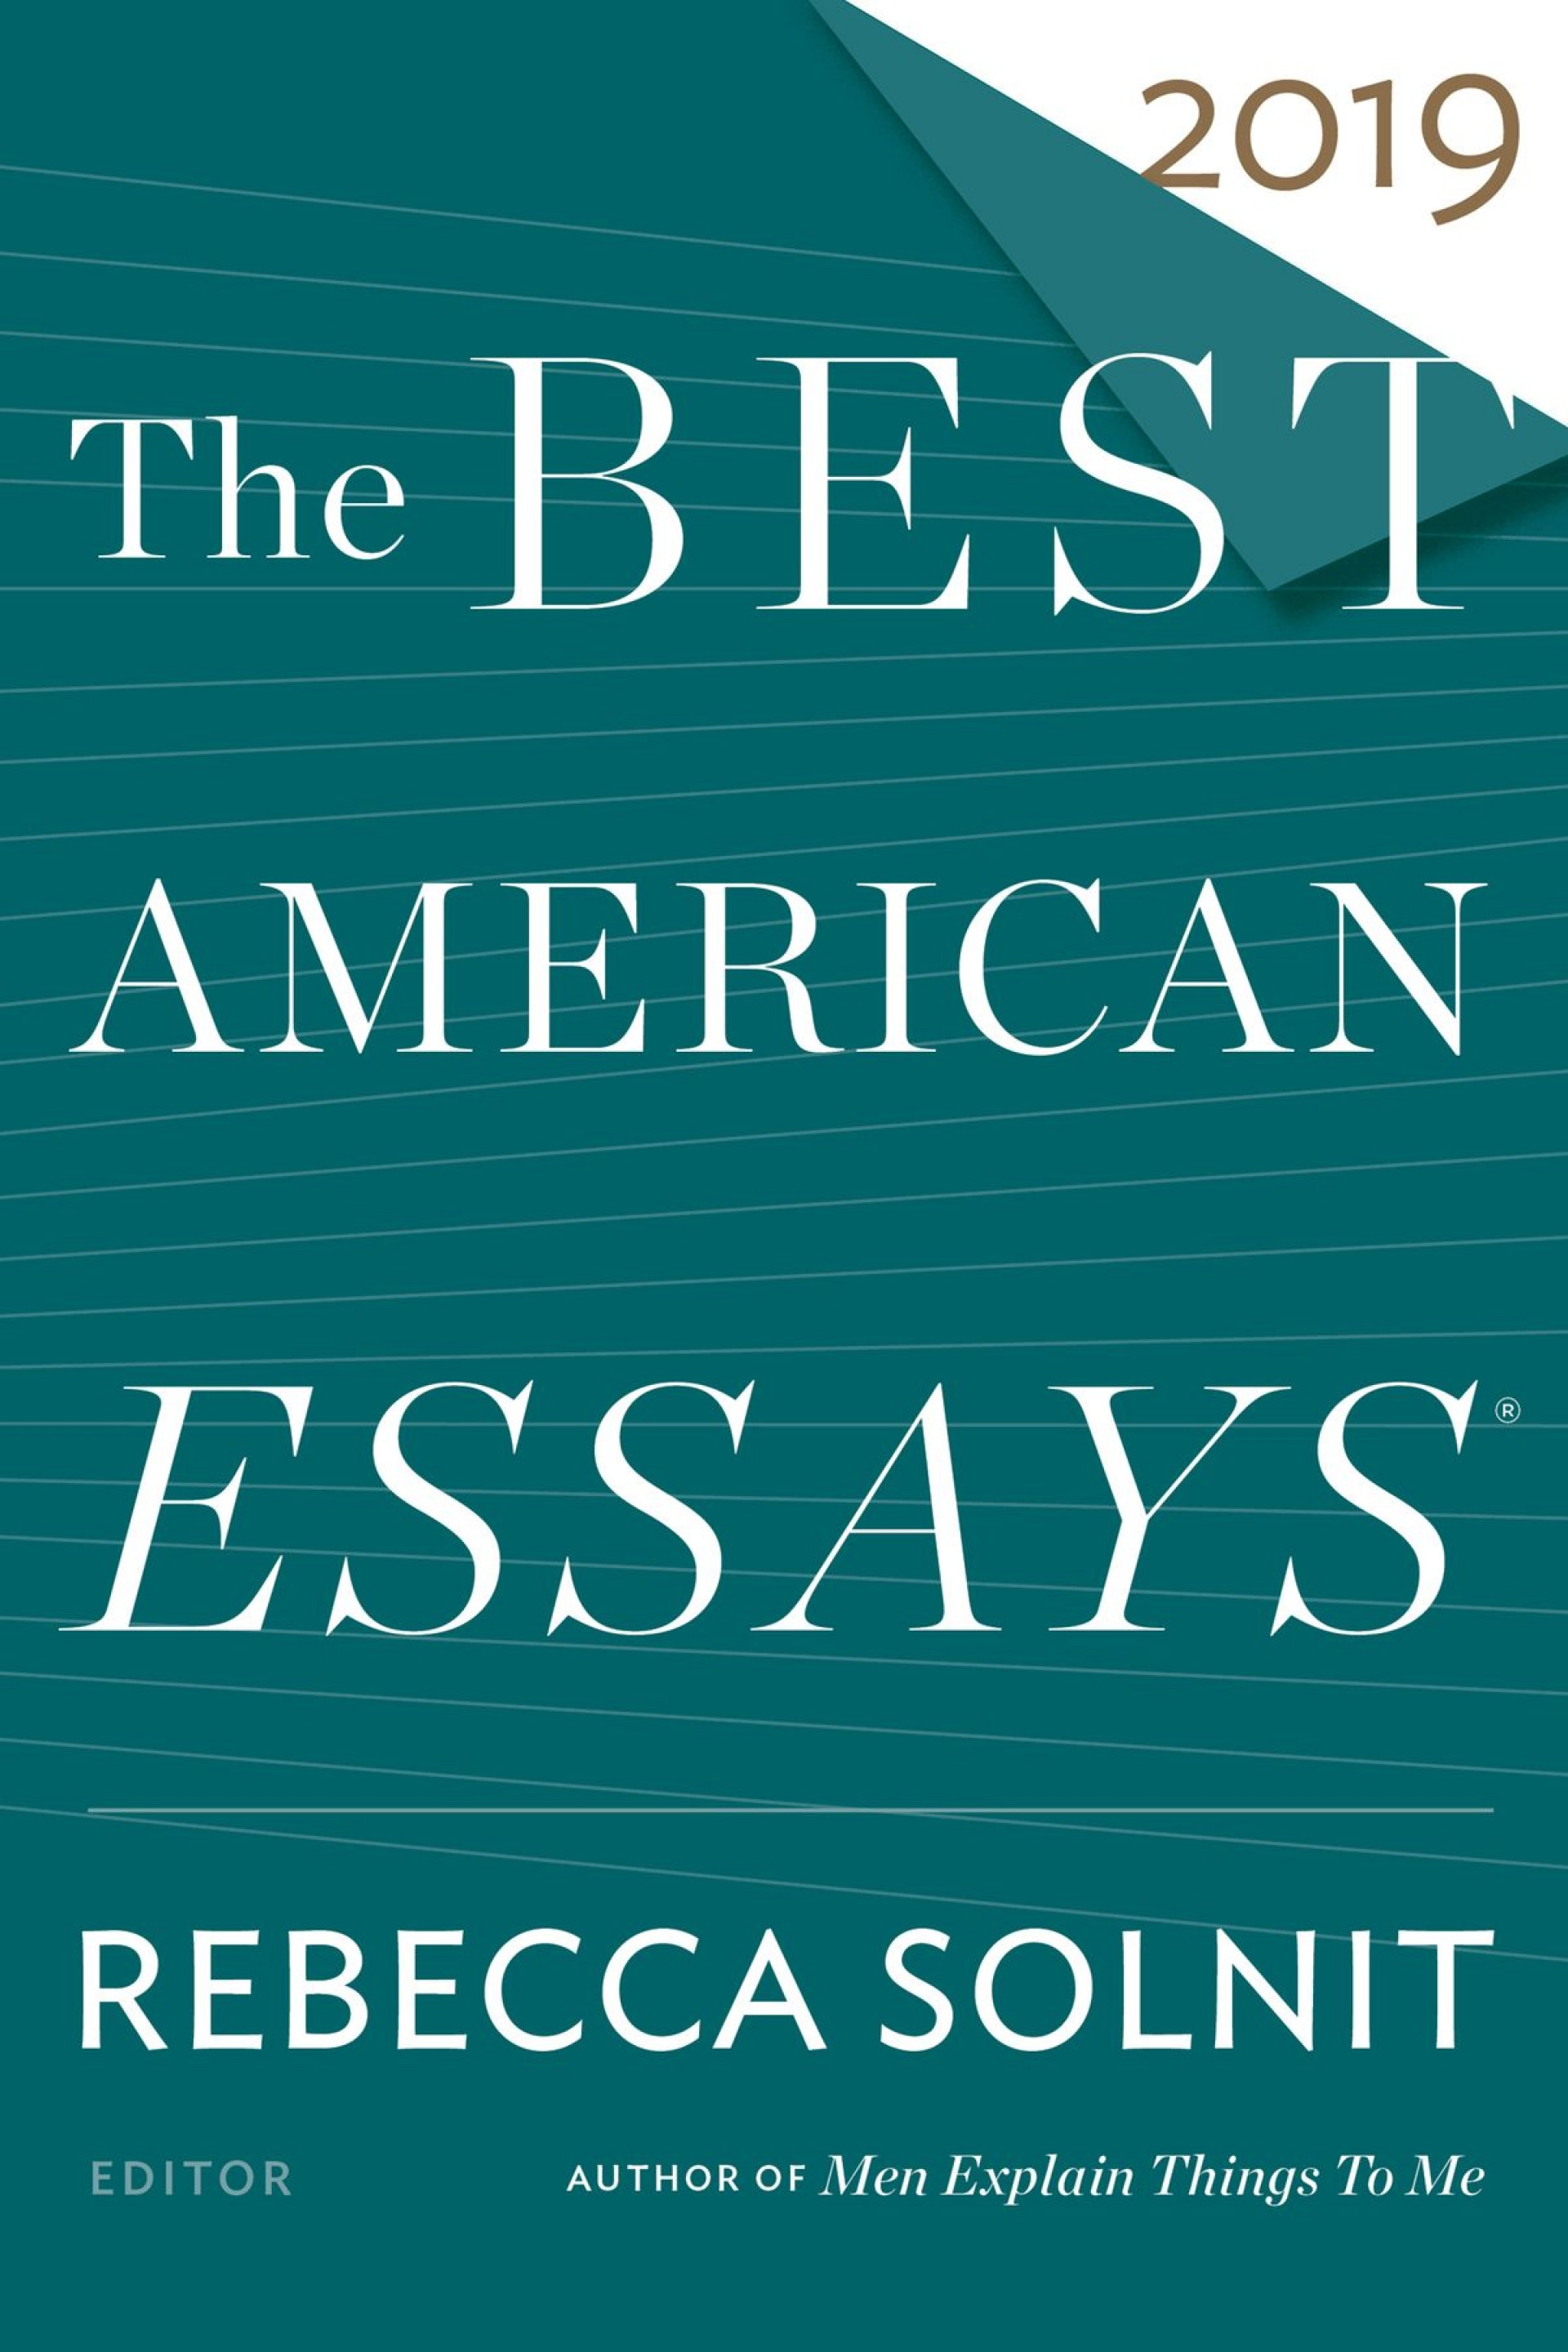 007 The Best American Essays Essay Wonderful 2018 List Pdf Download 2017 Free 1920